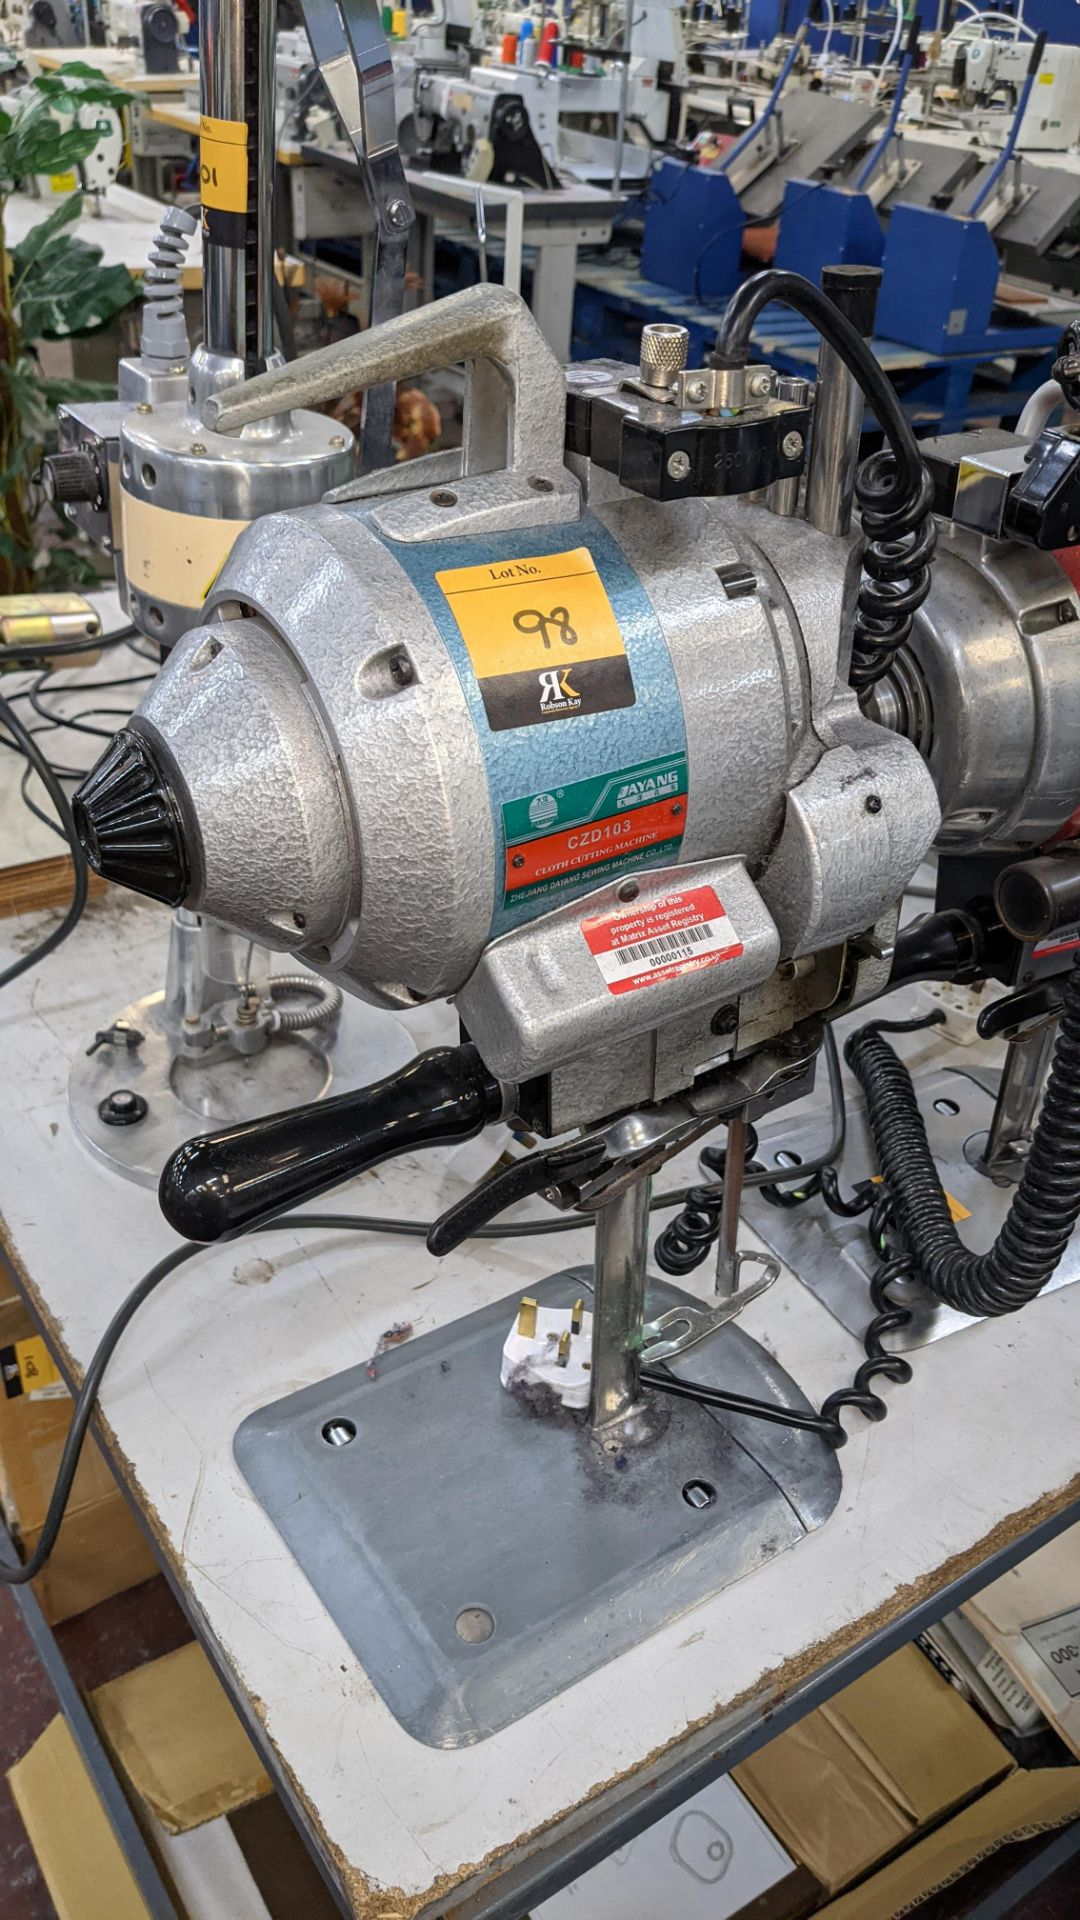 Ayang model CZD103 electric cutter